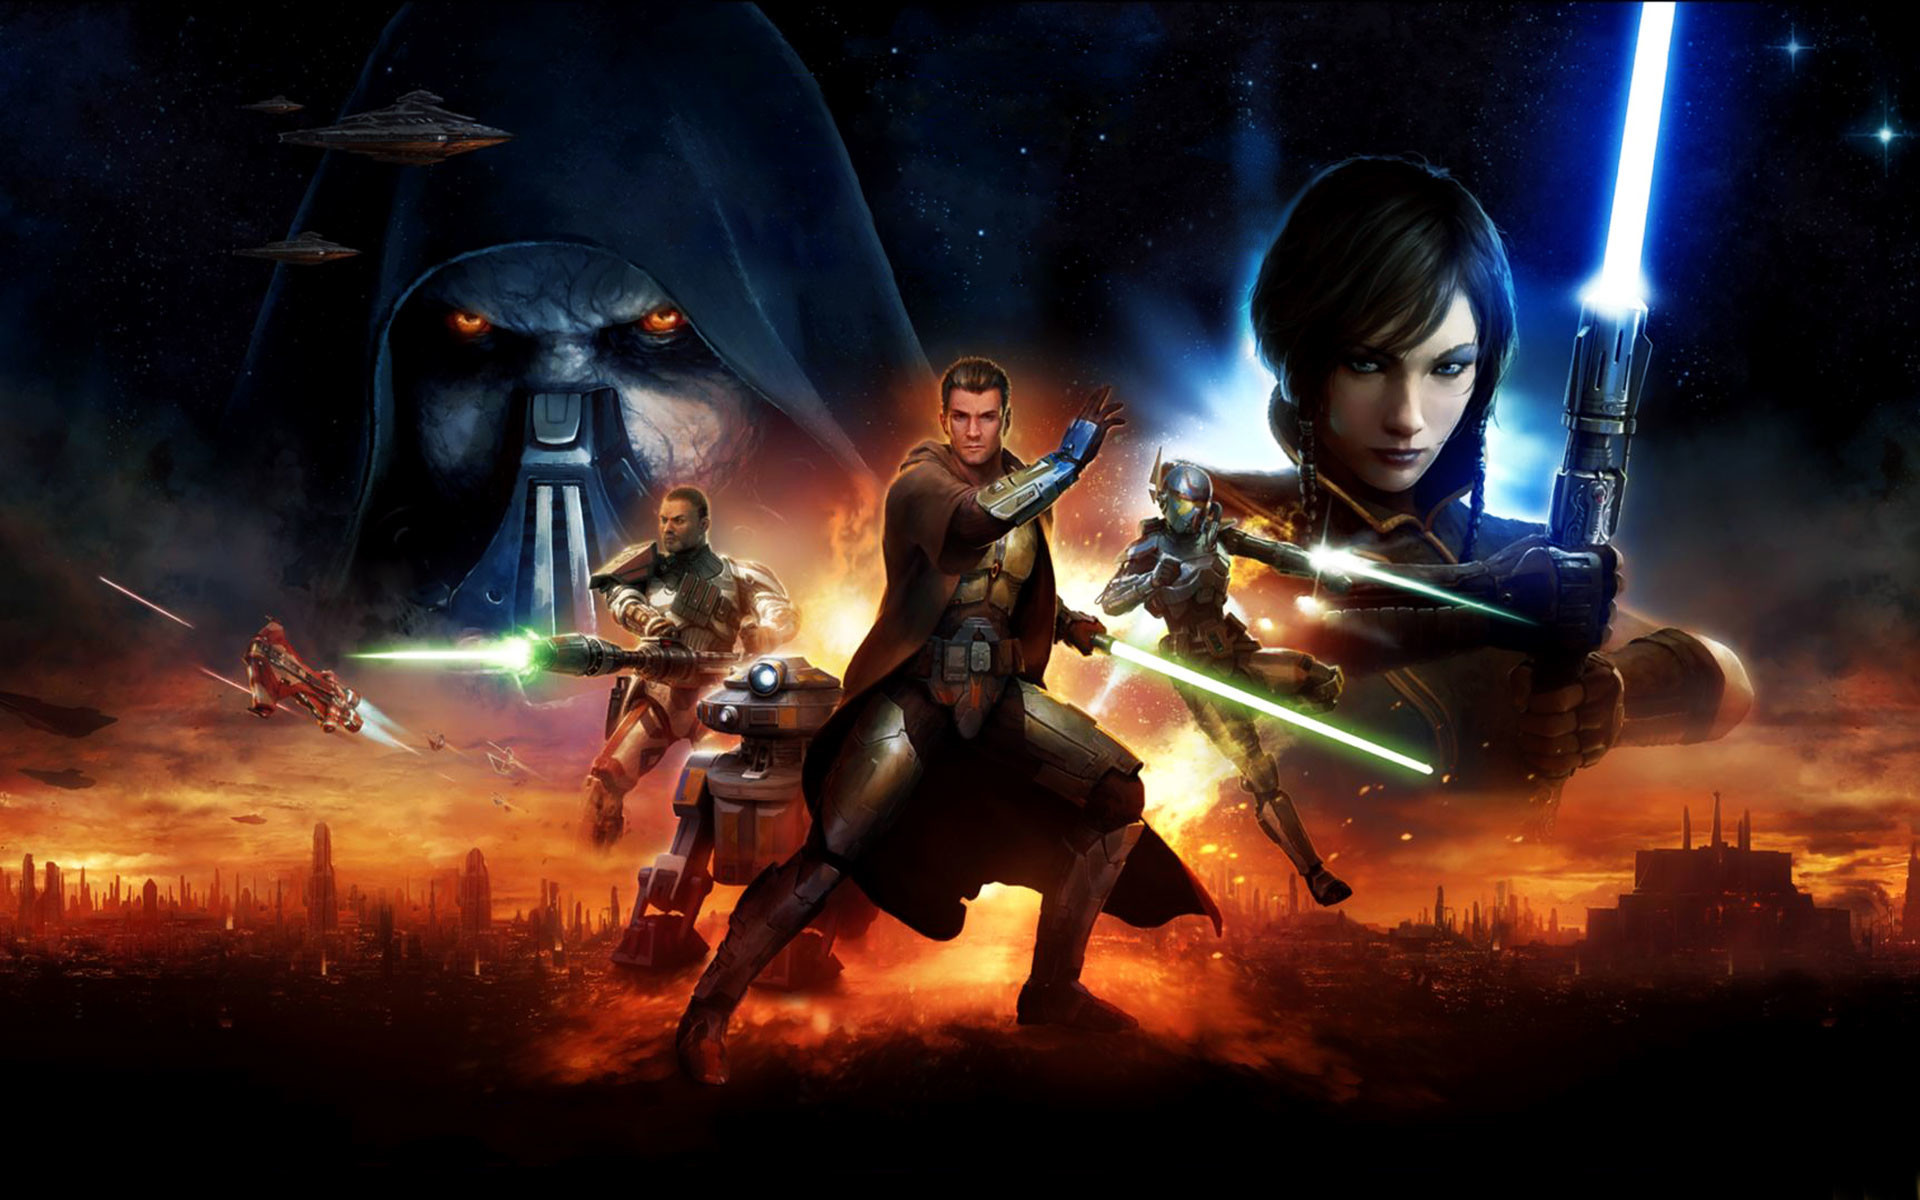 1920x1200 1510x2138 Nice wallpapers Star Wars: Knights Of The Old Republic 1510x2138px